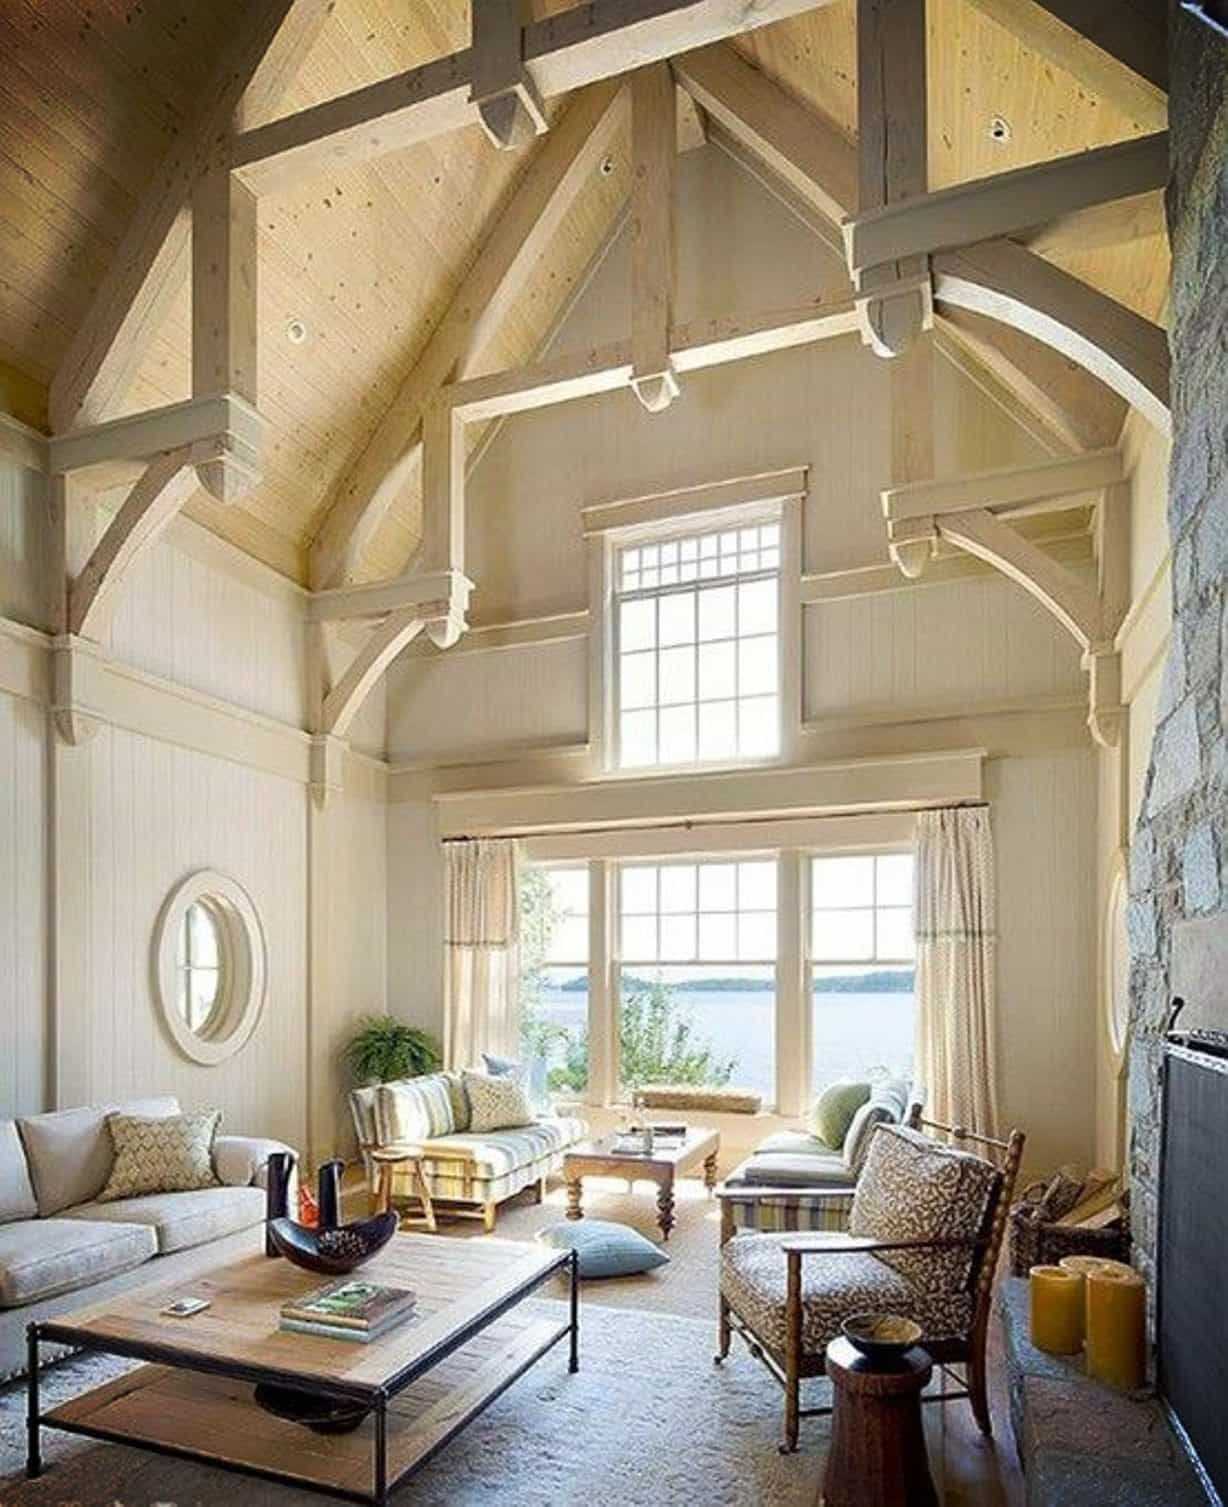 Living room with high vaulted ceiling with beams home - Living room ceiling beams ...